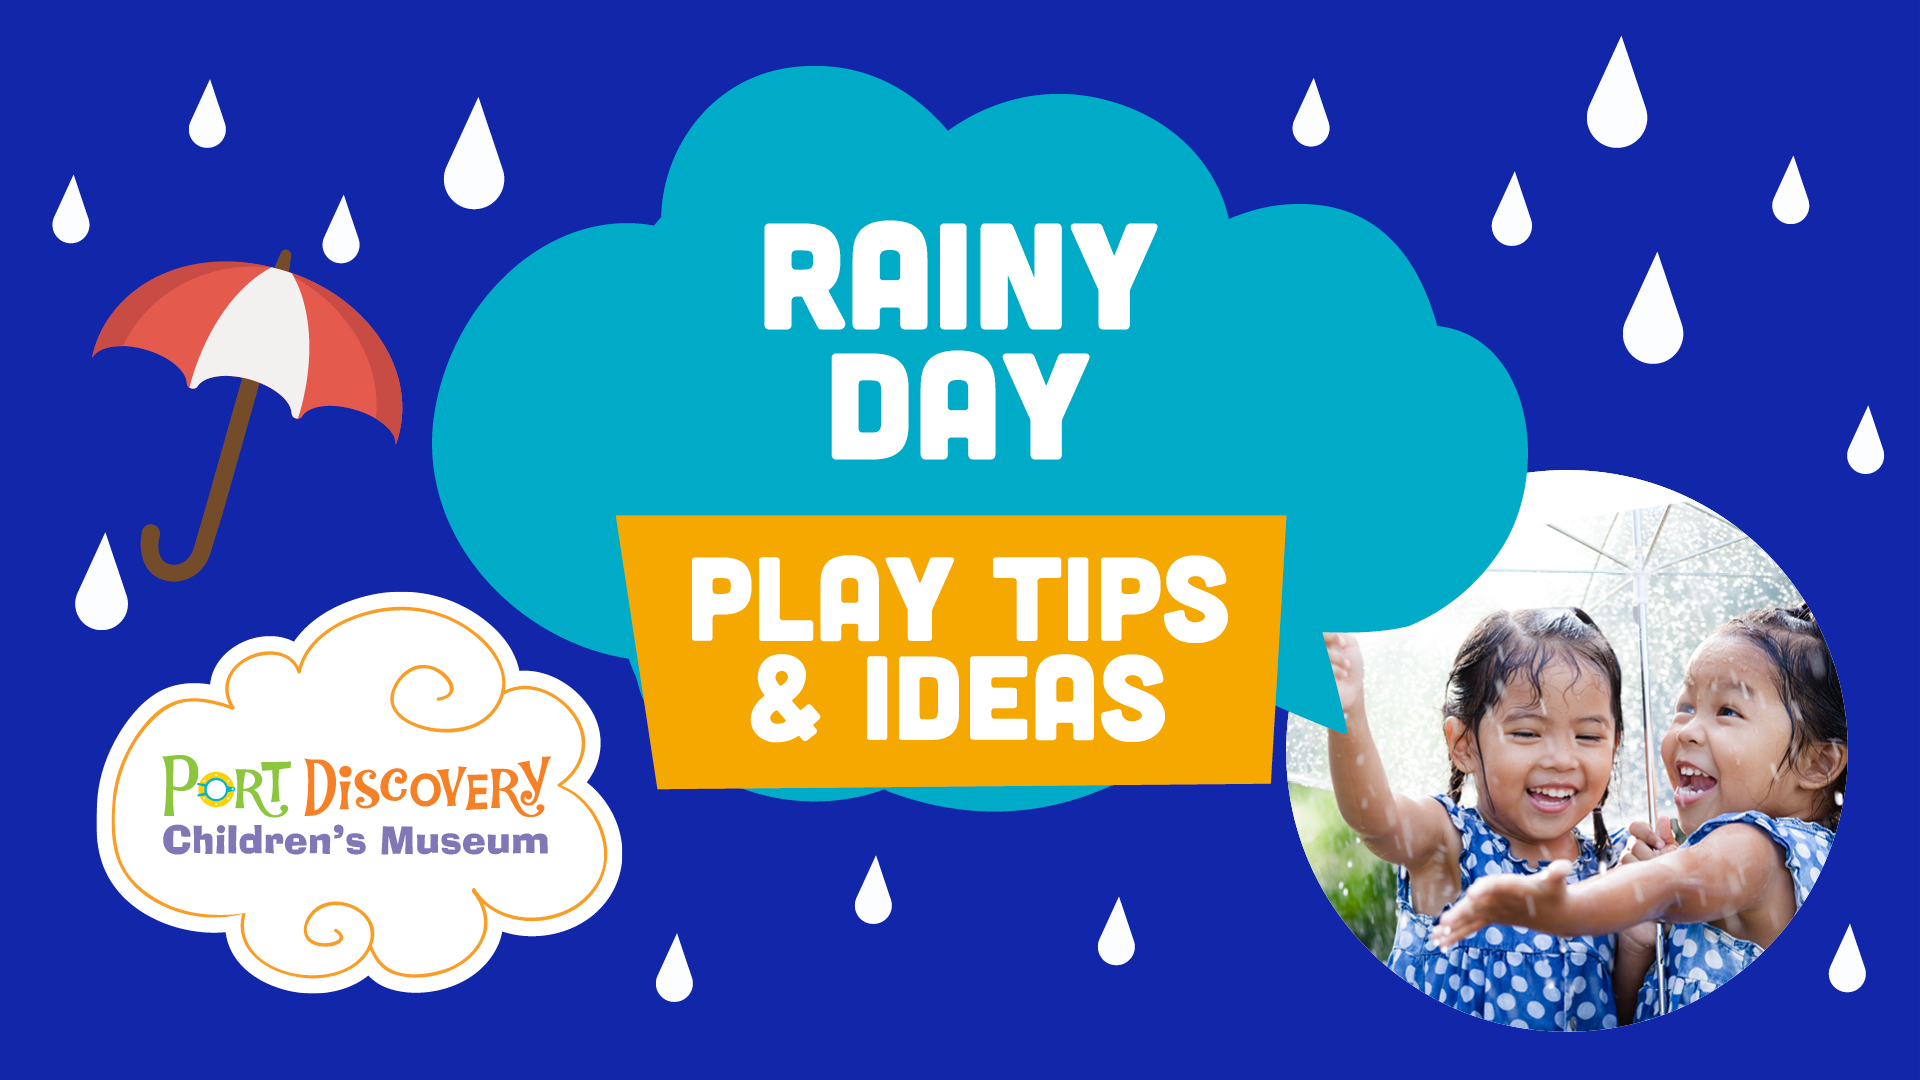 4 Rainy Day Play Ideas for Families